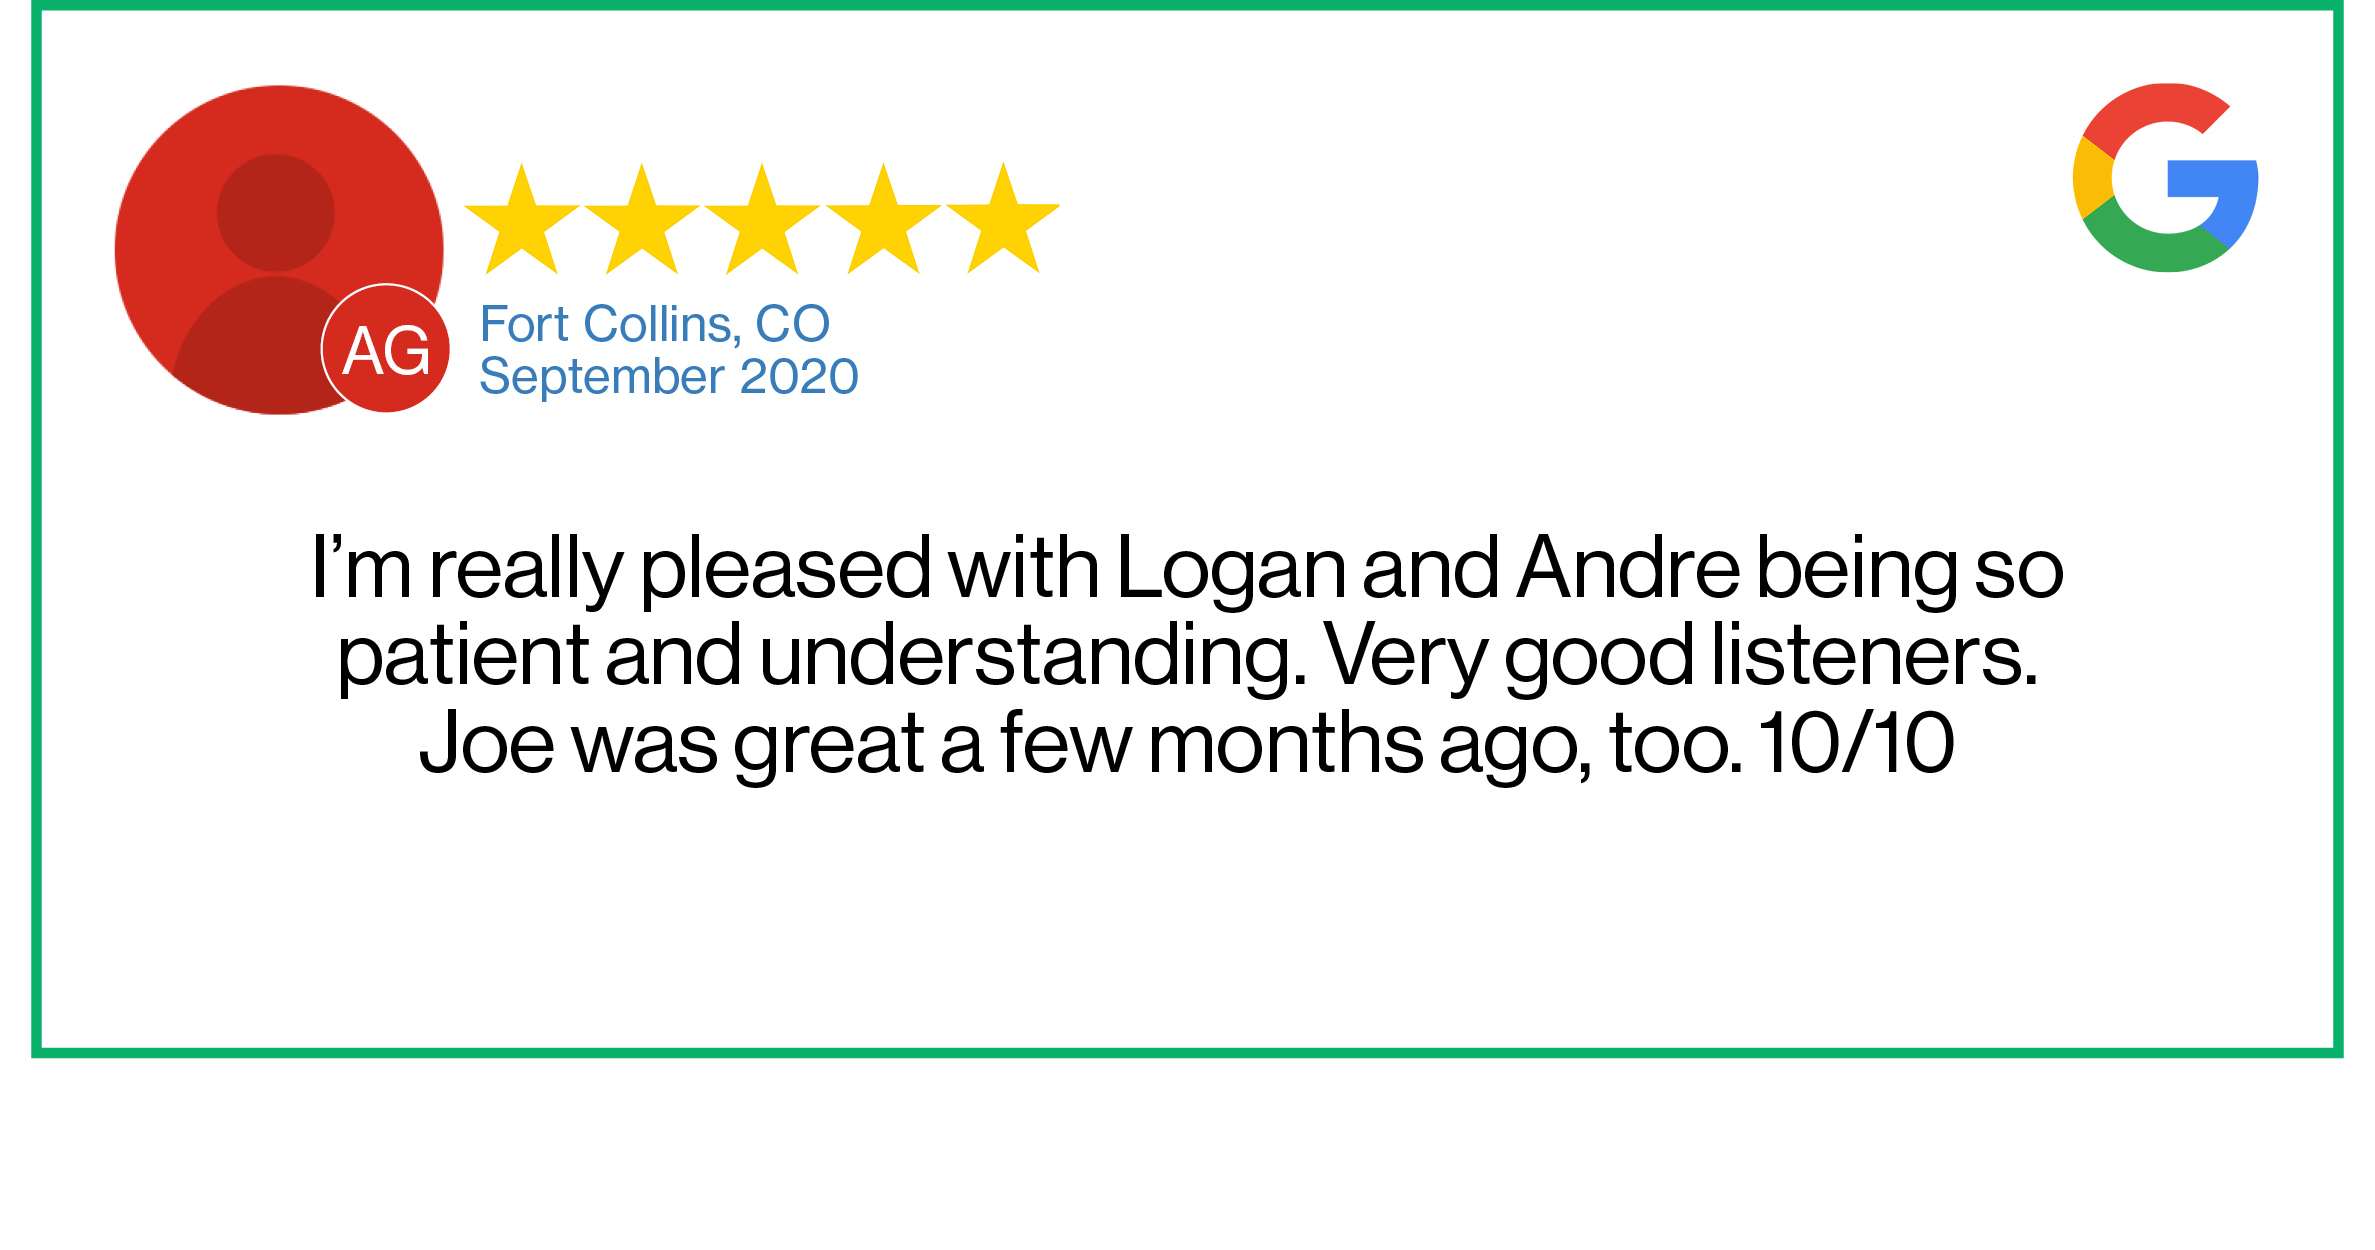 Check out this recent customer review about the Verizon Cellular Plus store in Ft Collins, Colorado.